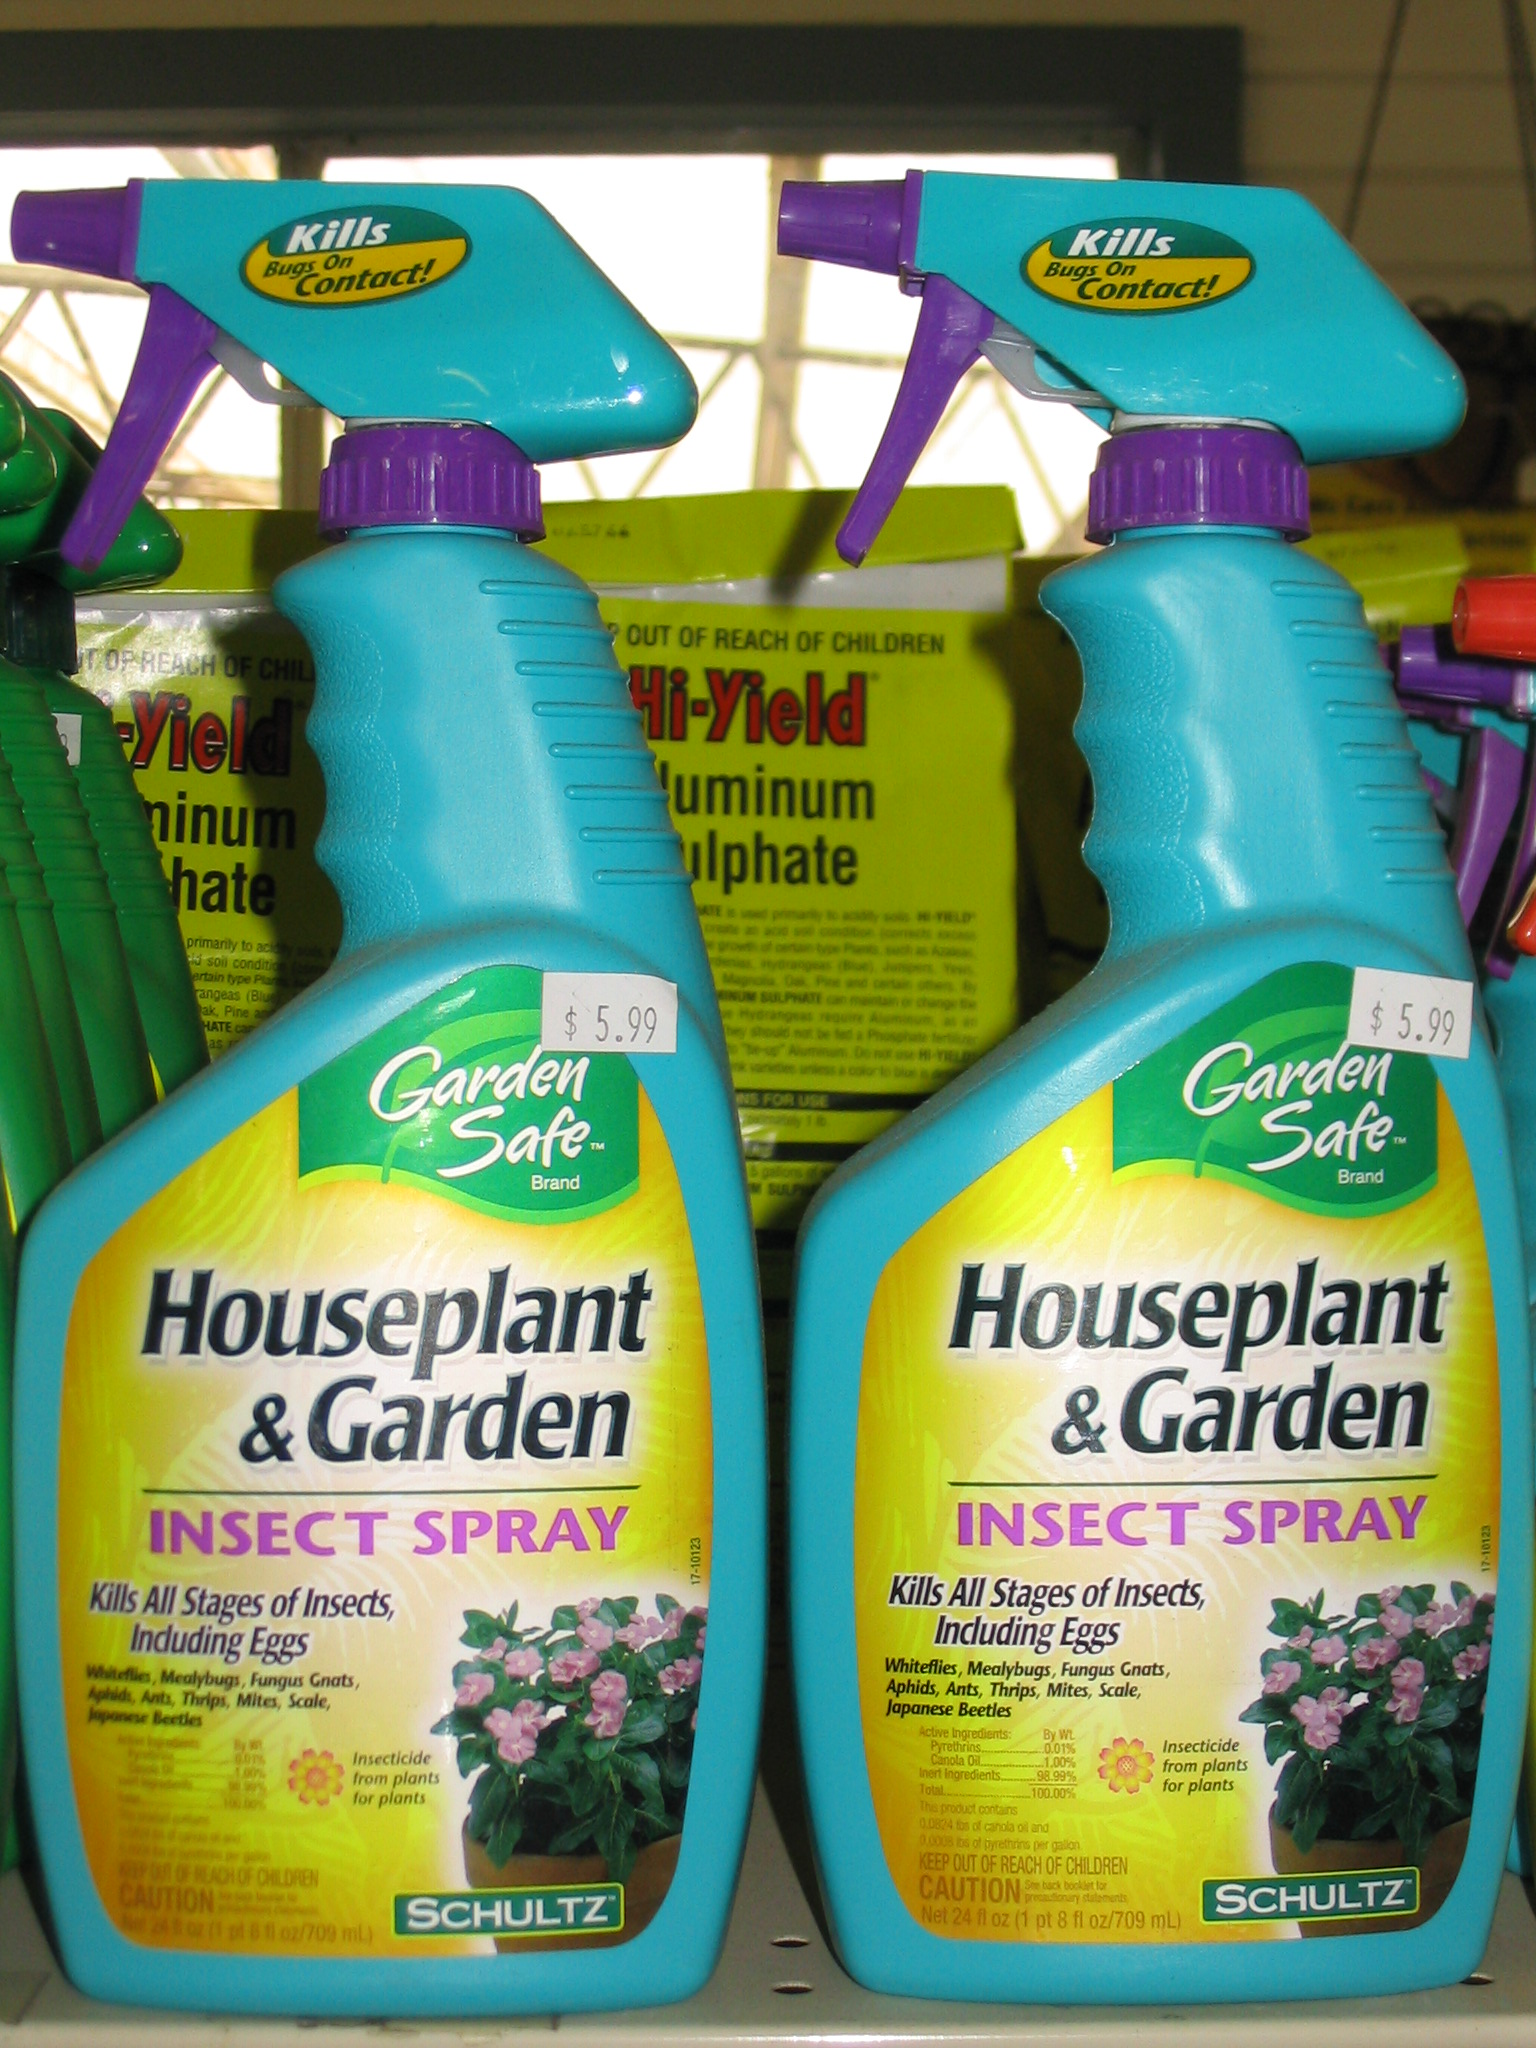 Use insecticides only when needed